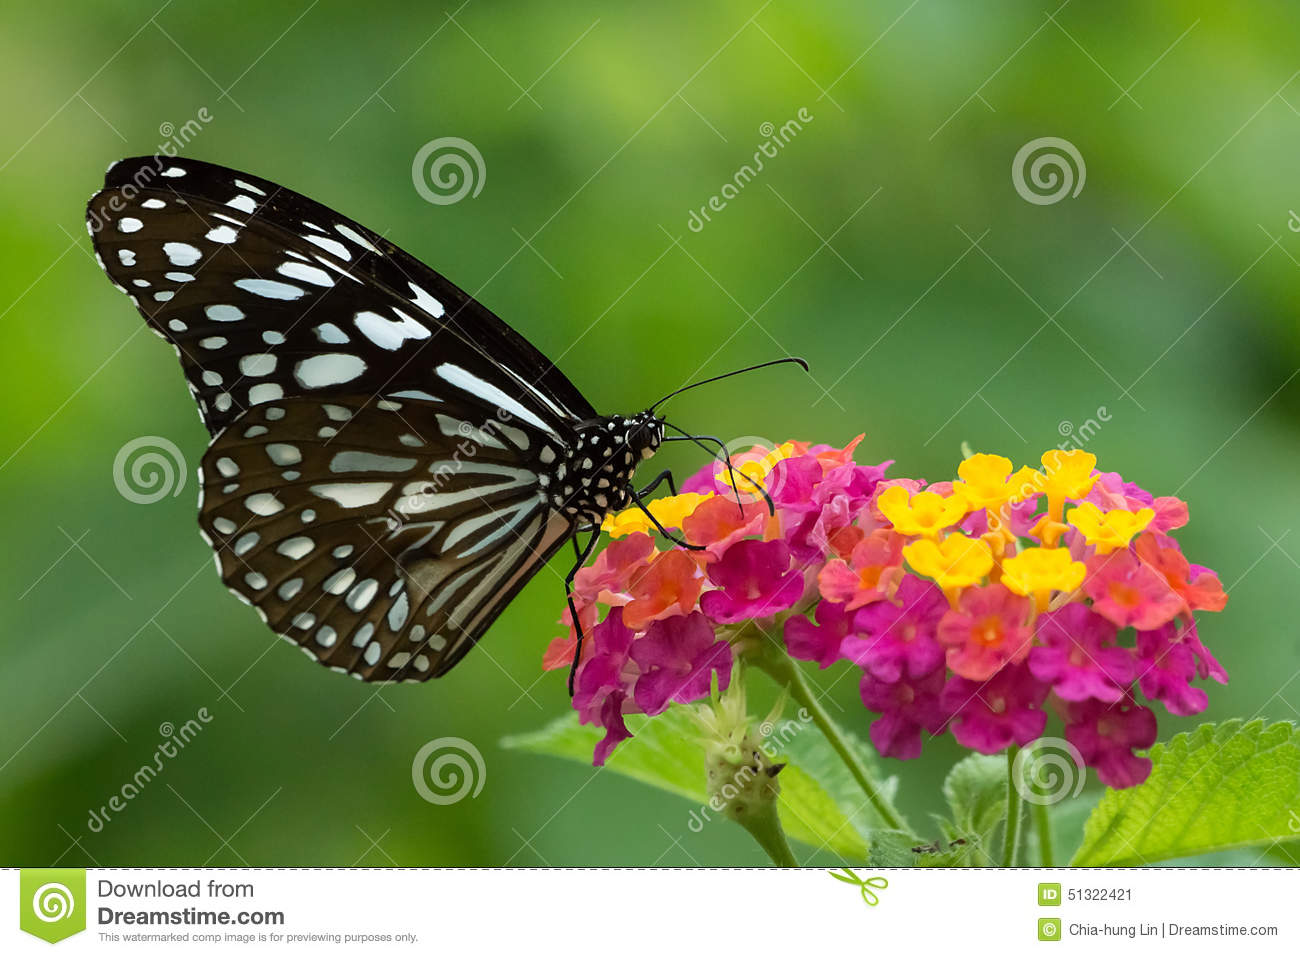 A Ceylon Blue Glassy Tiger Butterfly Sucking Honey From Colorful Flowers.